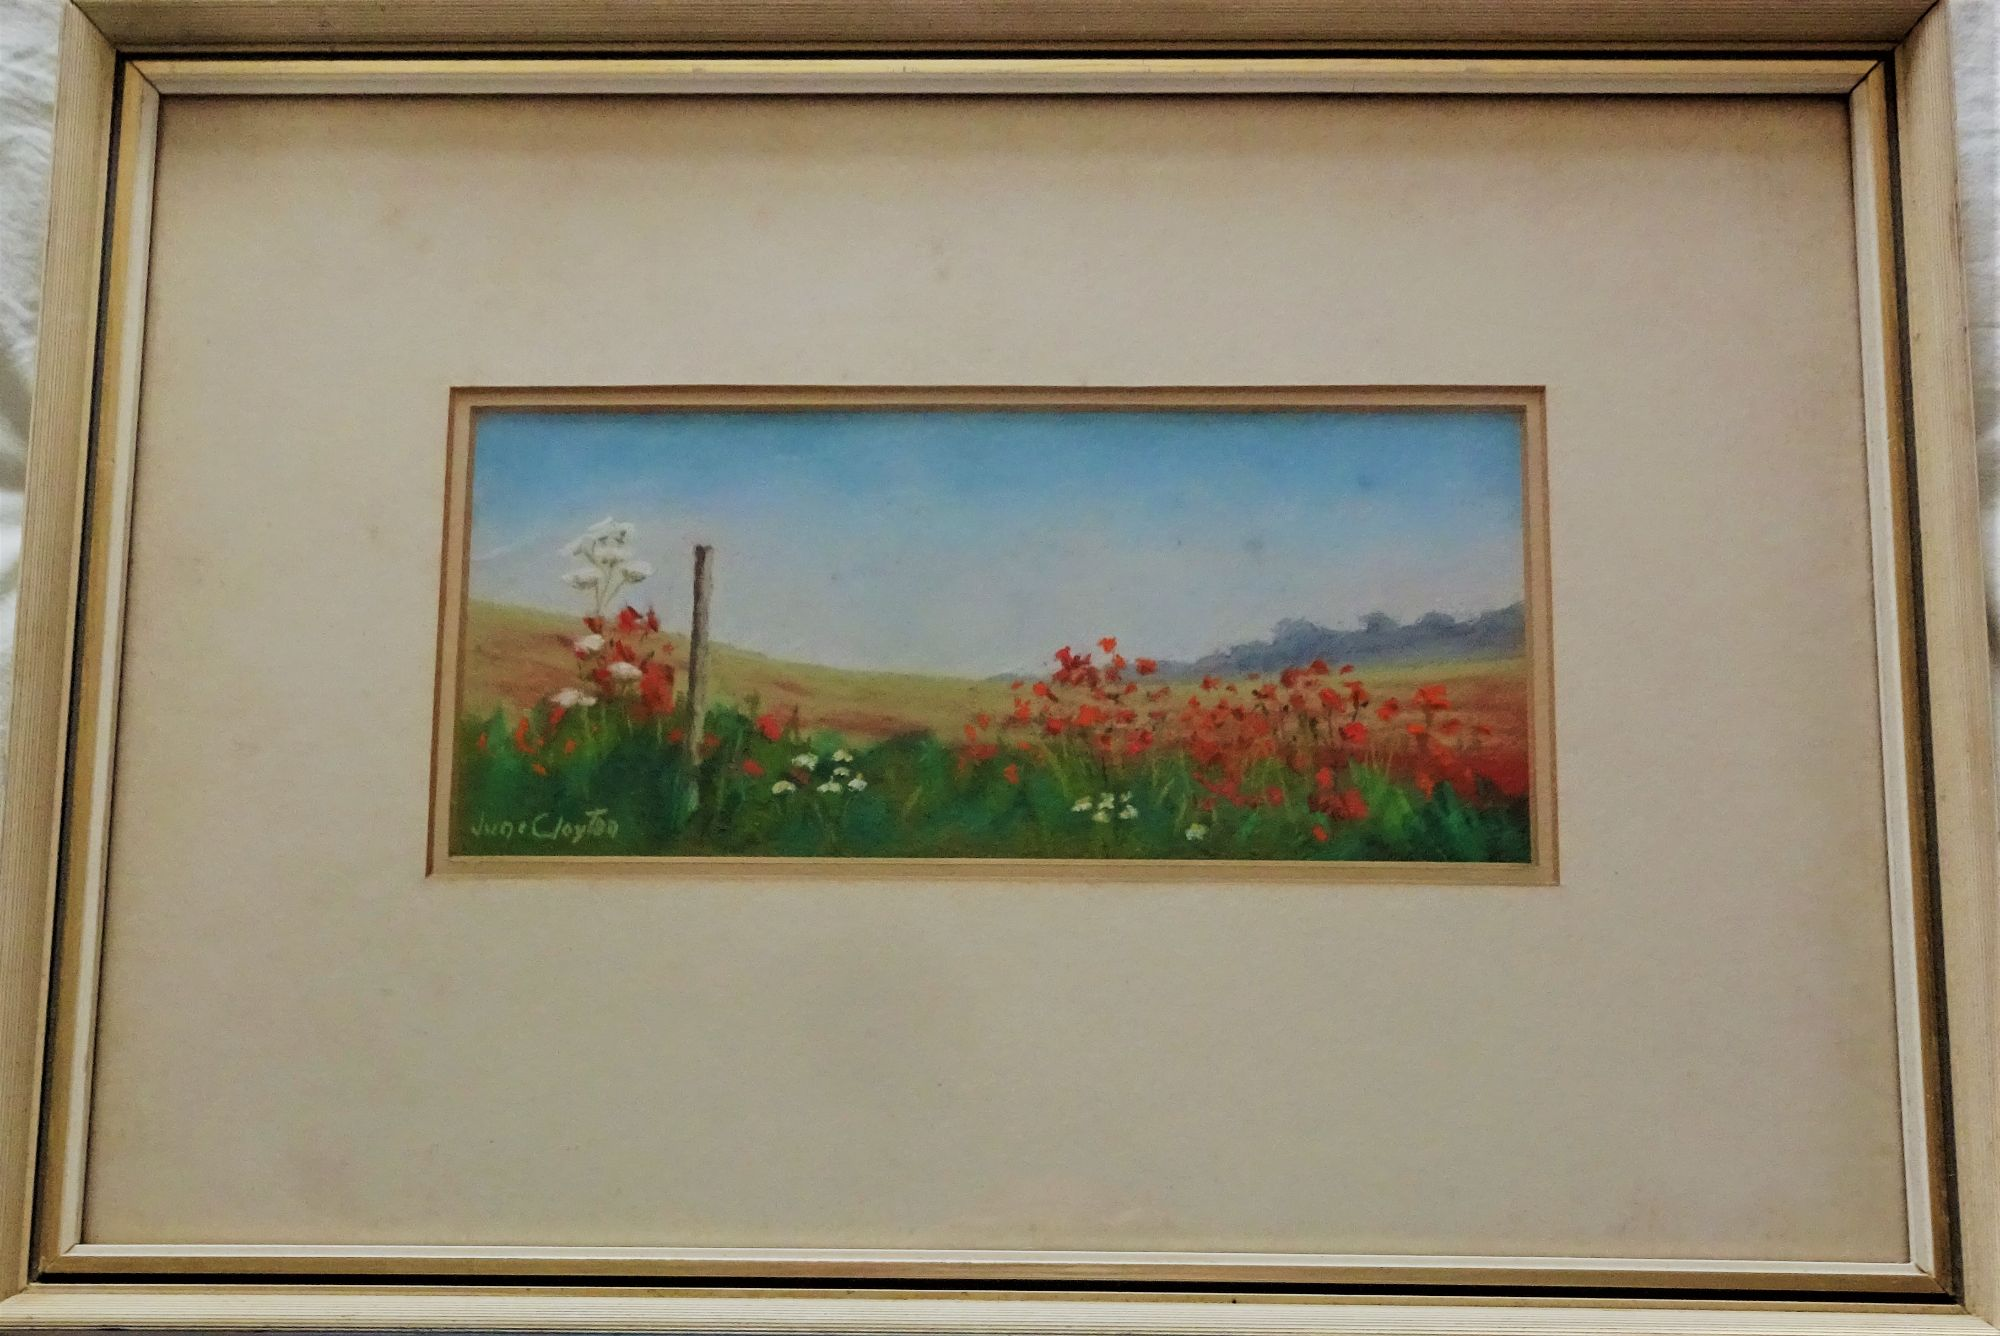 June Clayton, Wild Poppies landscape, gouache, signed titled and dated 1985.